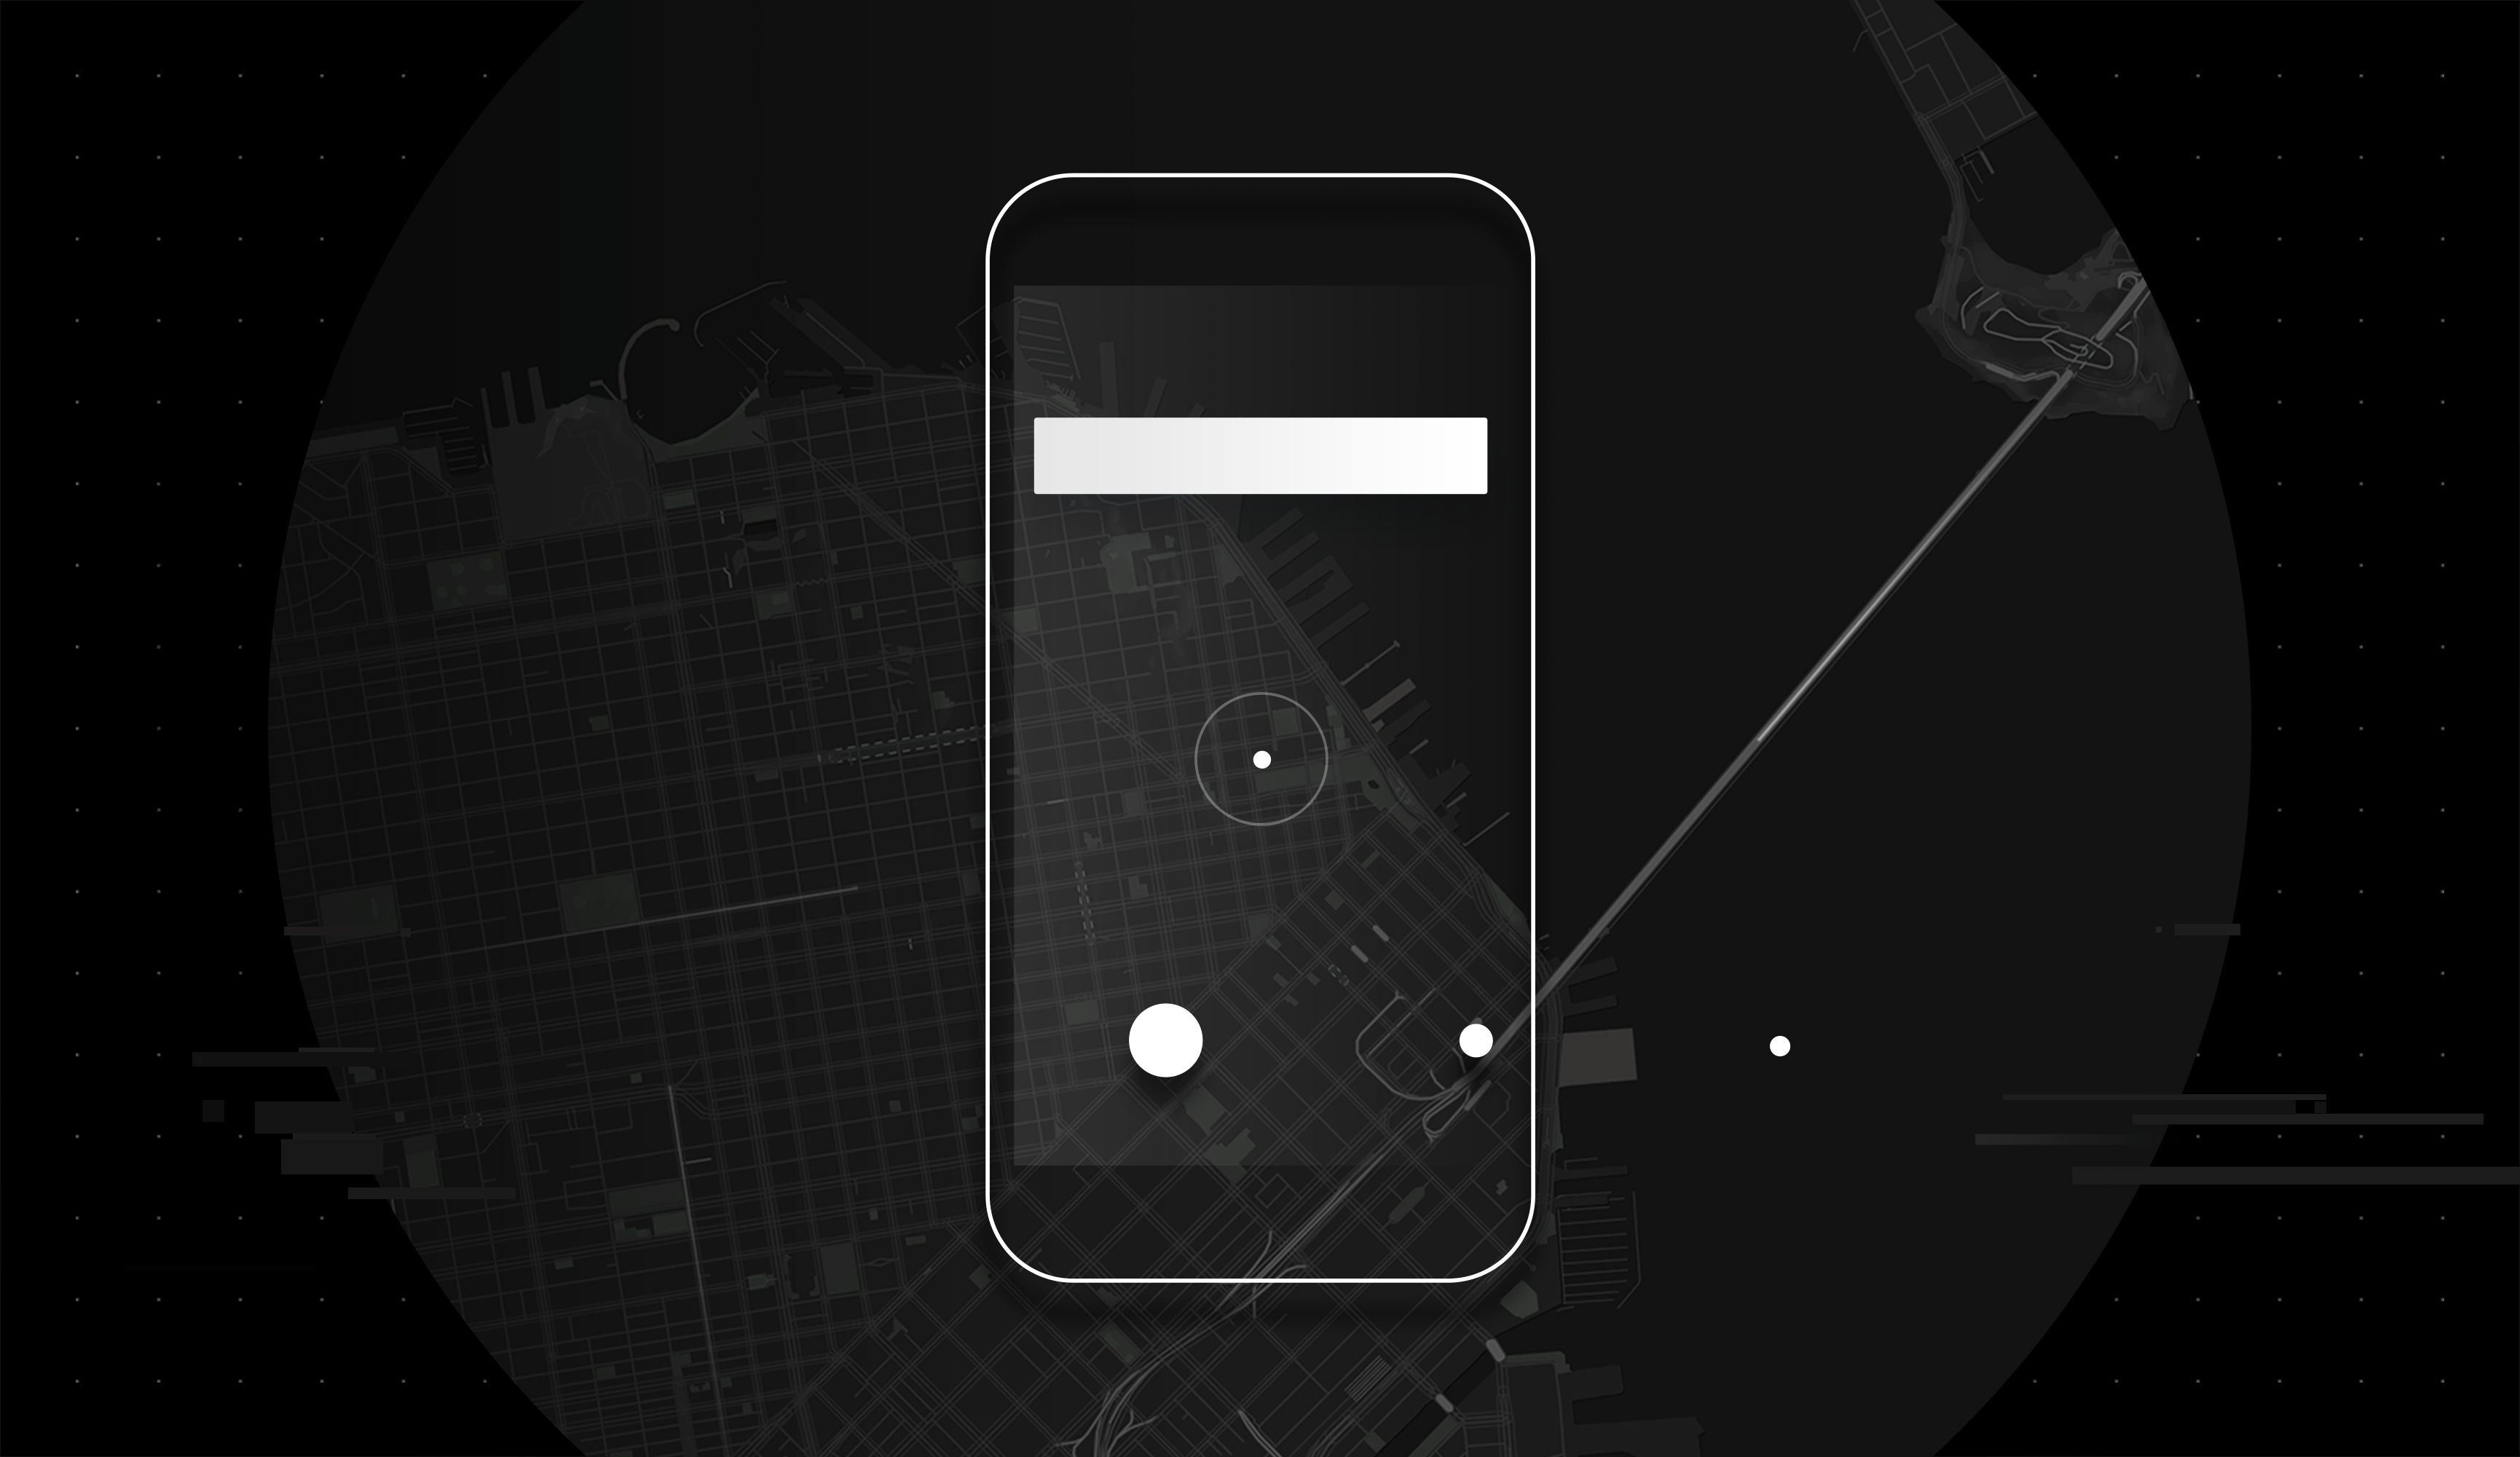 New Uber Rider App Case Studies Design At Uber (met